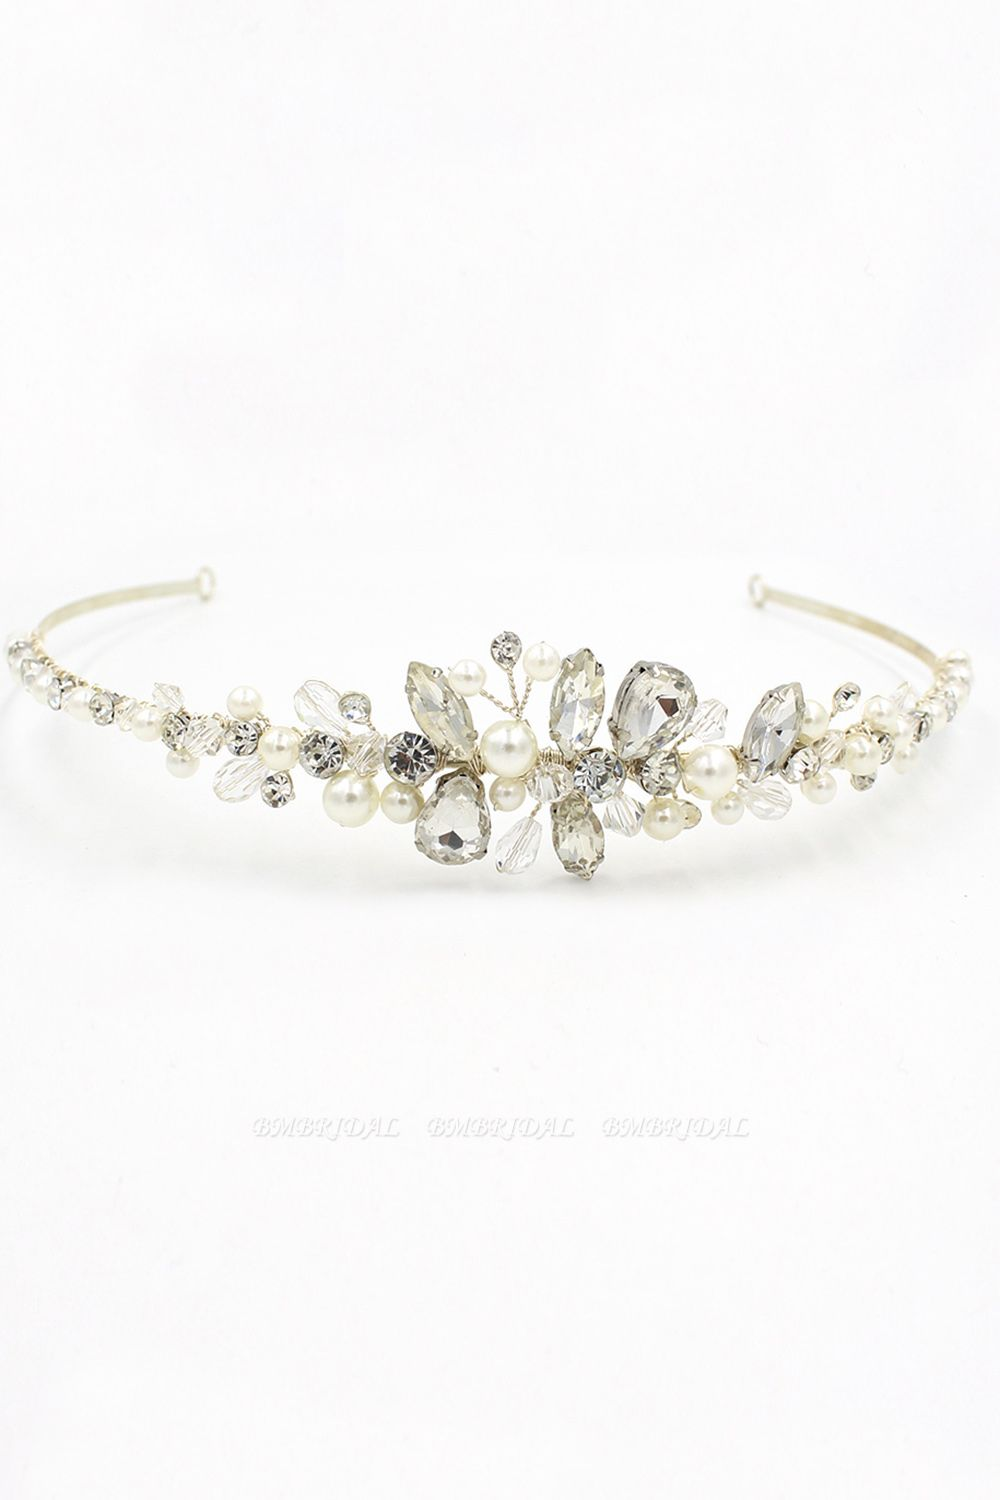 BMbridal Glamourous Alloy Imitation Pearls Special Occasion Wedding Hairpins Headpiece with Crystal Rhinestone